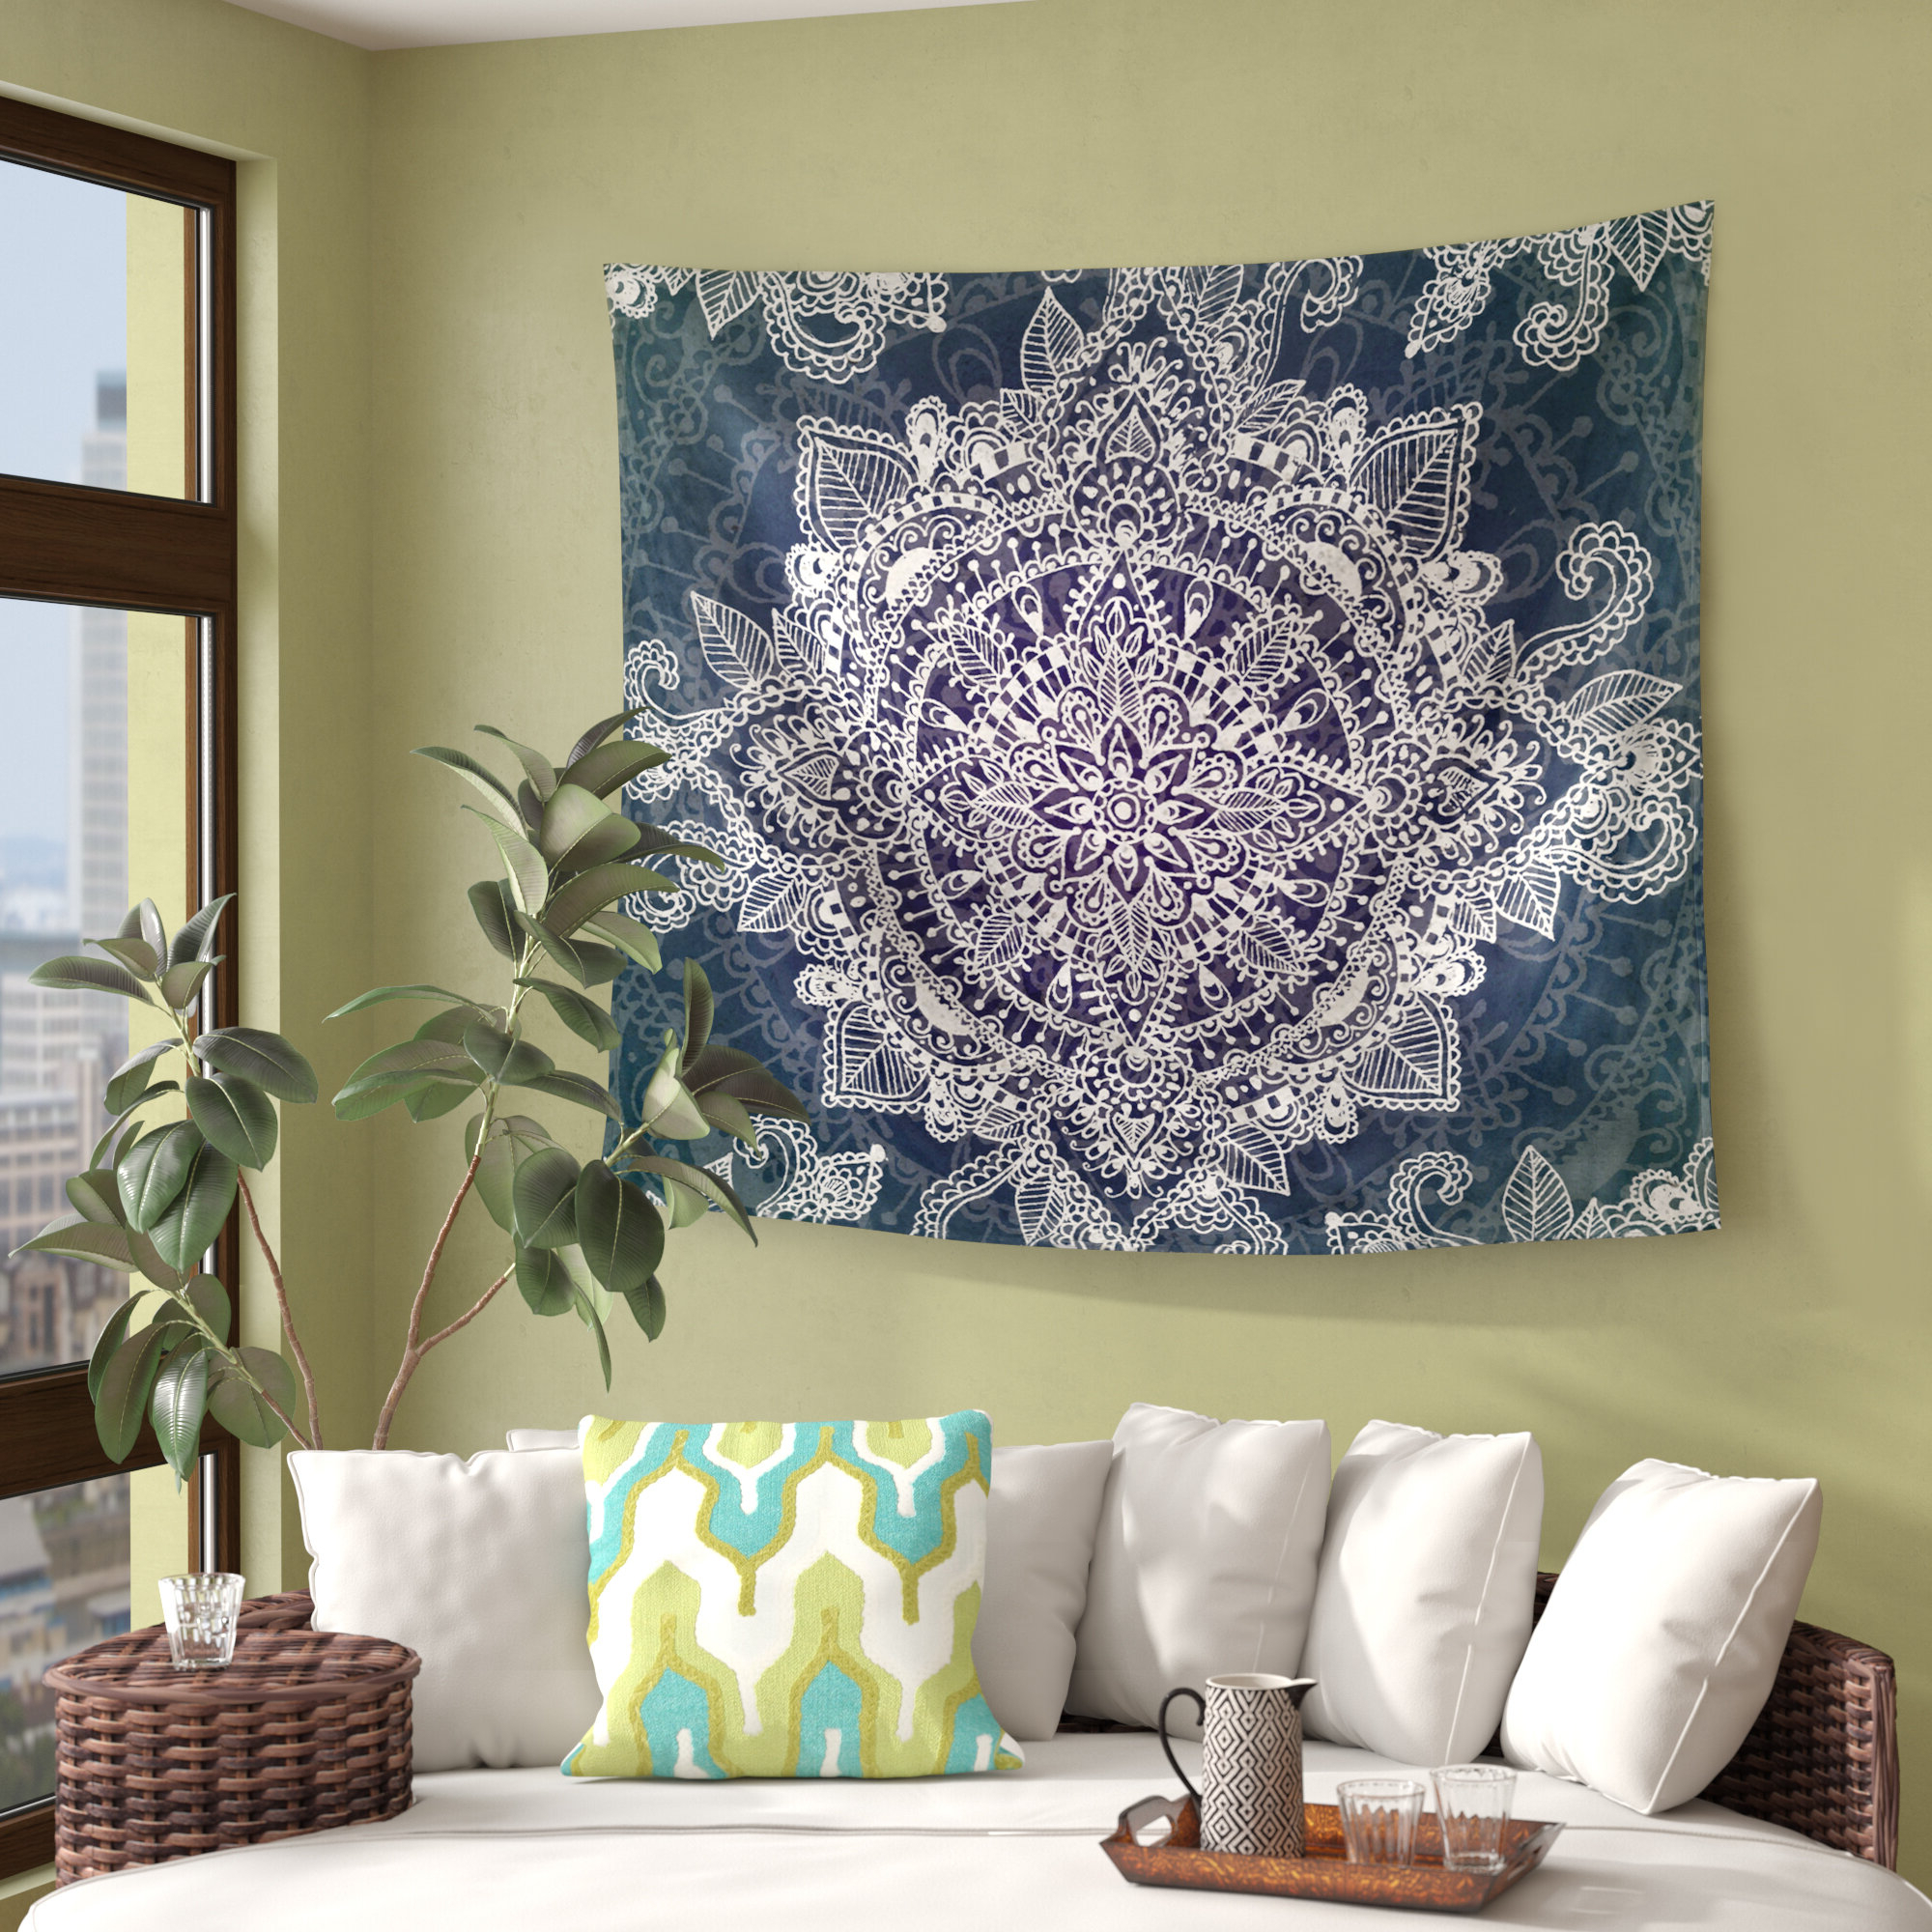 Tapestries You'll Love In 2021 » Wayfair Inside Famous Blended Fabric Peacock European Tapestries (View 19 of 20)